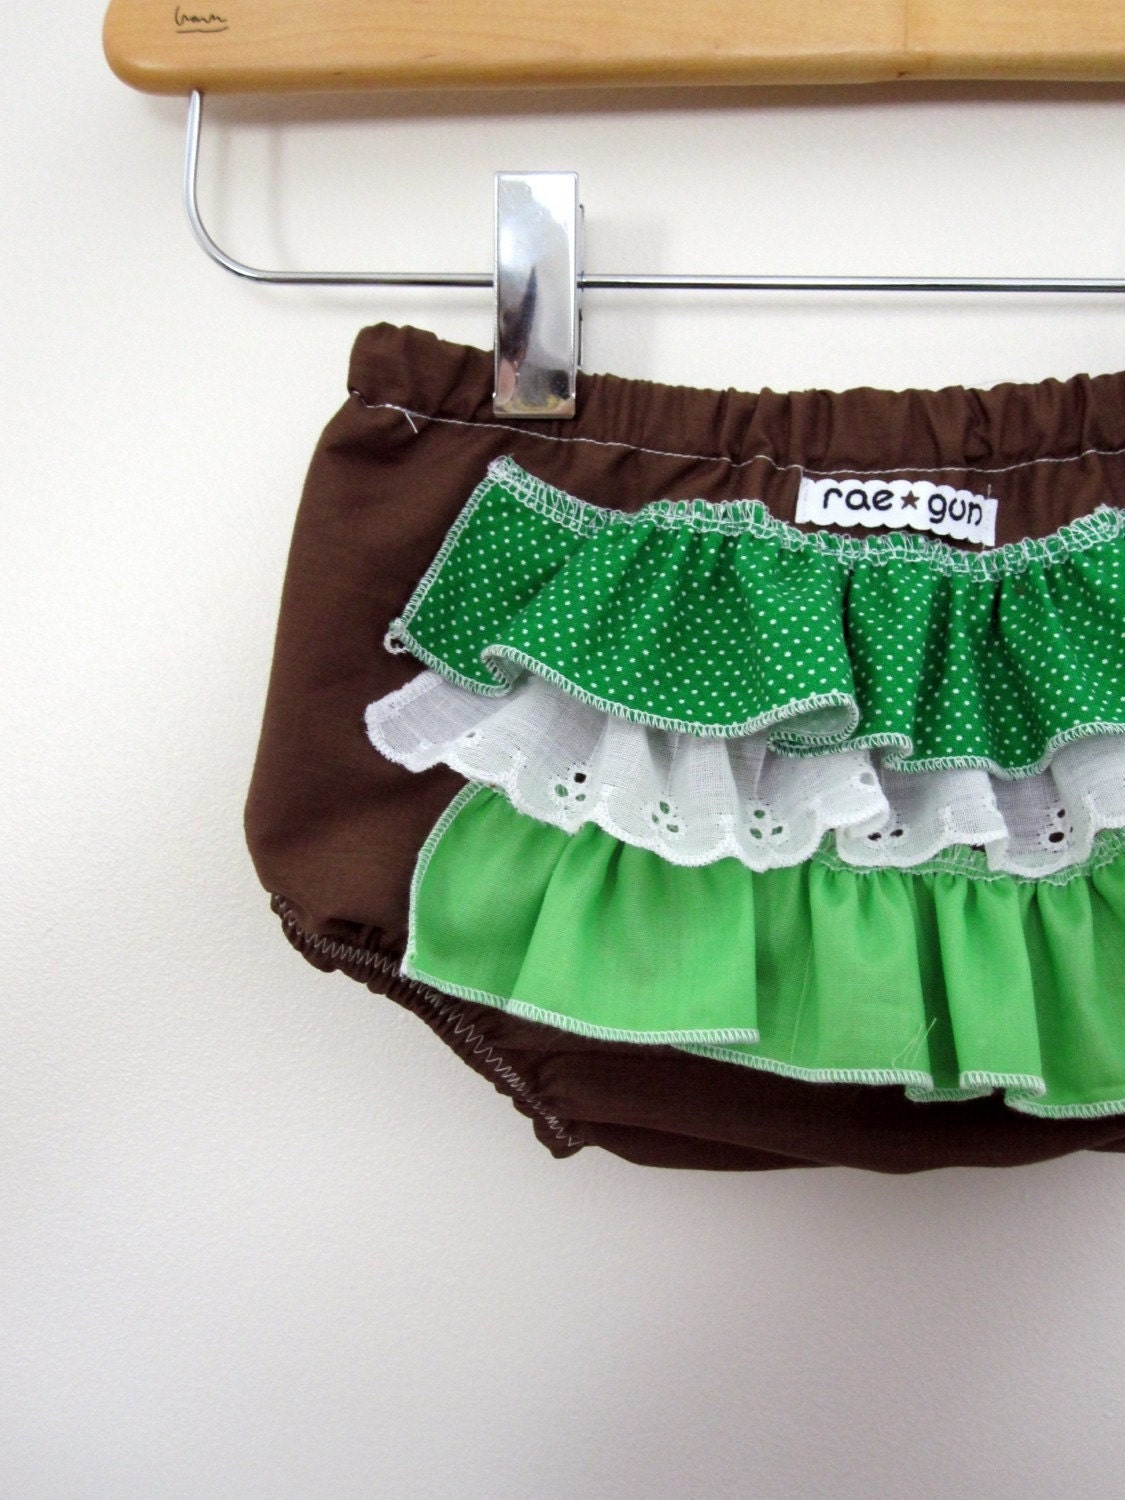 Grasshopper -ruffle diaper covers